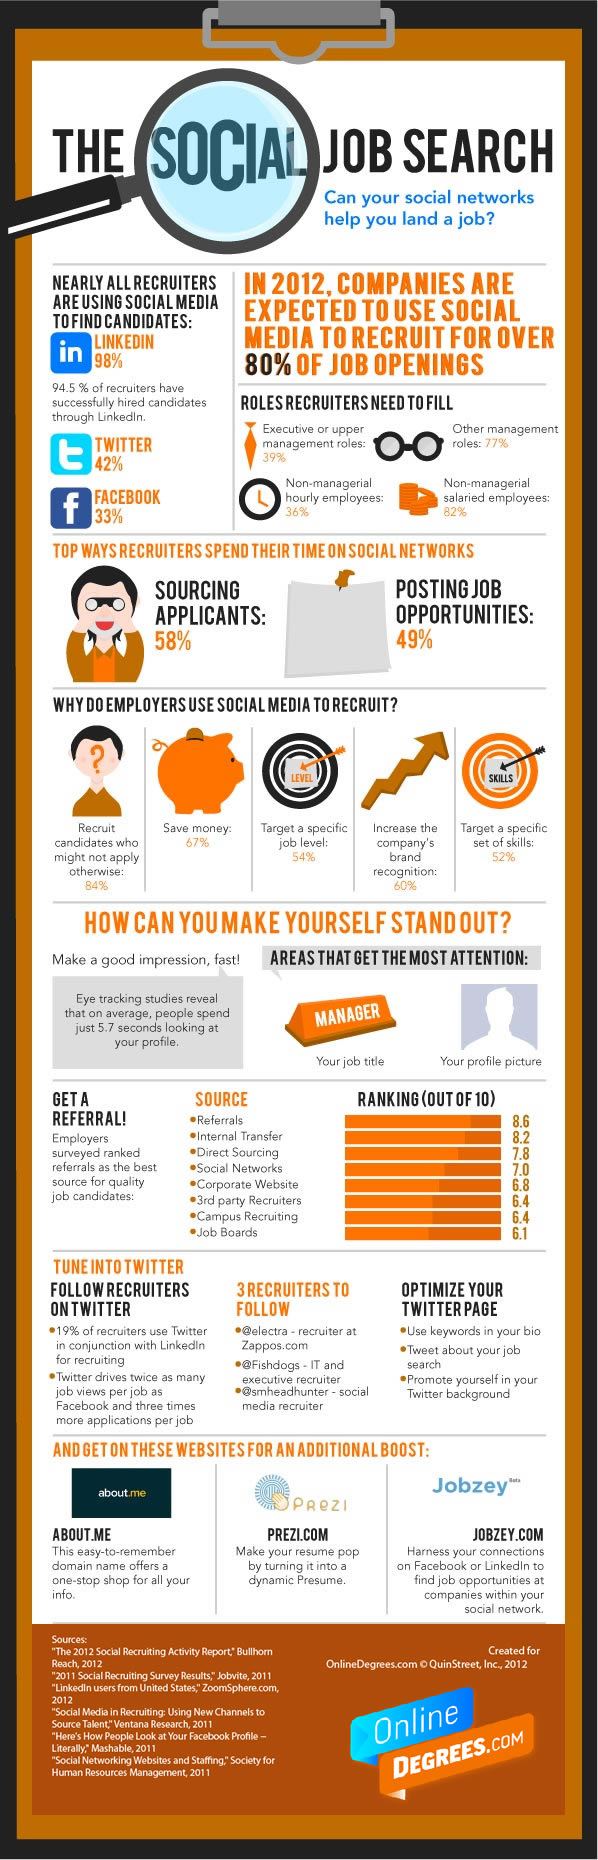 How to use social media to land a job